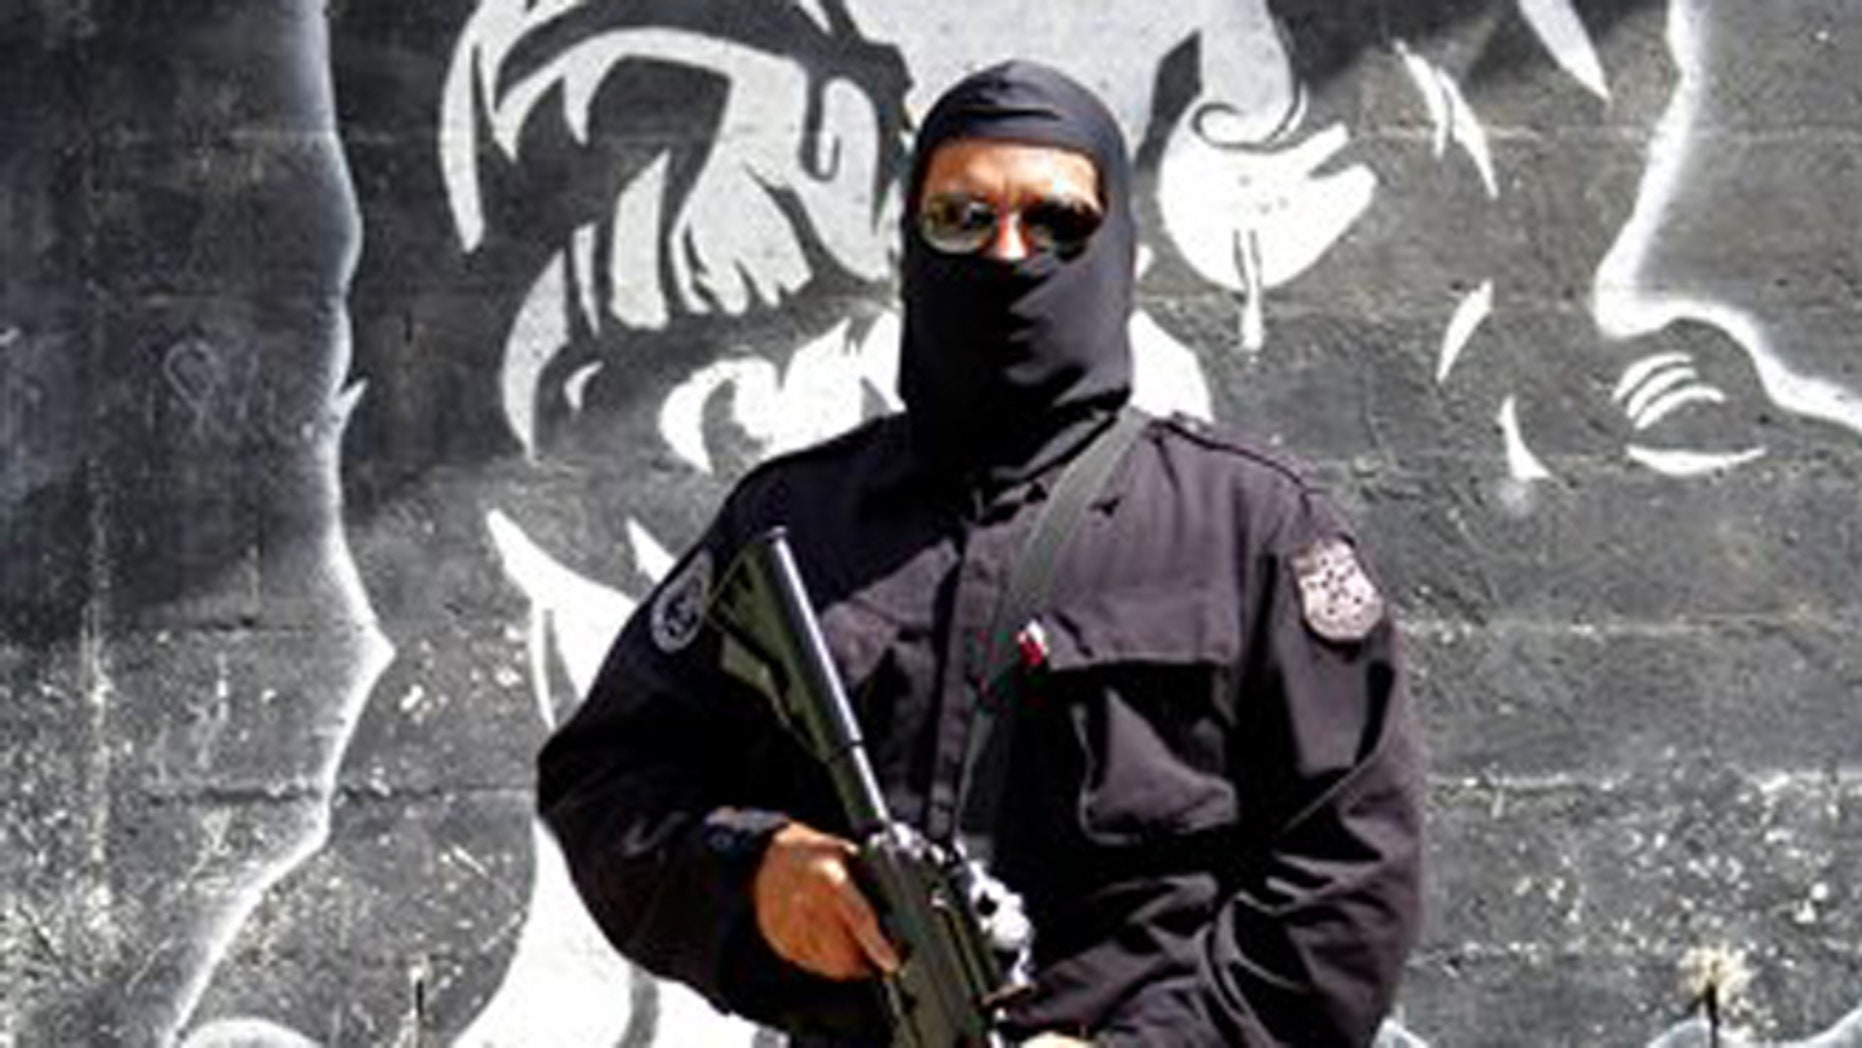 In this April 5, 2016 photo, a masked and armed policeman patrols a gang controlled neighborhood in San Salvador, El Salvador. Hyper-violent gangs declared open-season on police in this Central American nation in response to a government crackdown that began last year. In just three weeks in January, gang members were blamed in the slayings of a cop's father, a soldier's brother, the wives of two police officers and a woman and her son who were relatives of a cop. (AP Photo/Alex Peña)